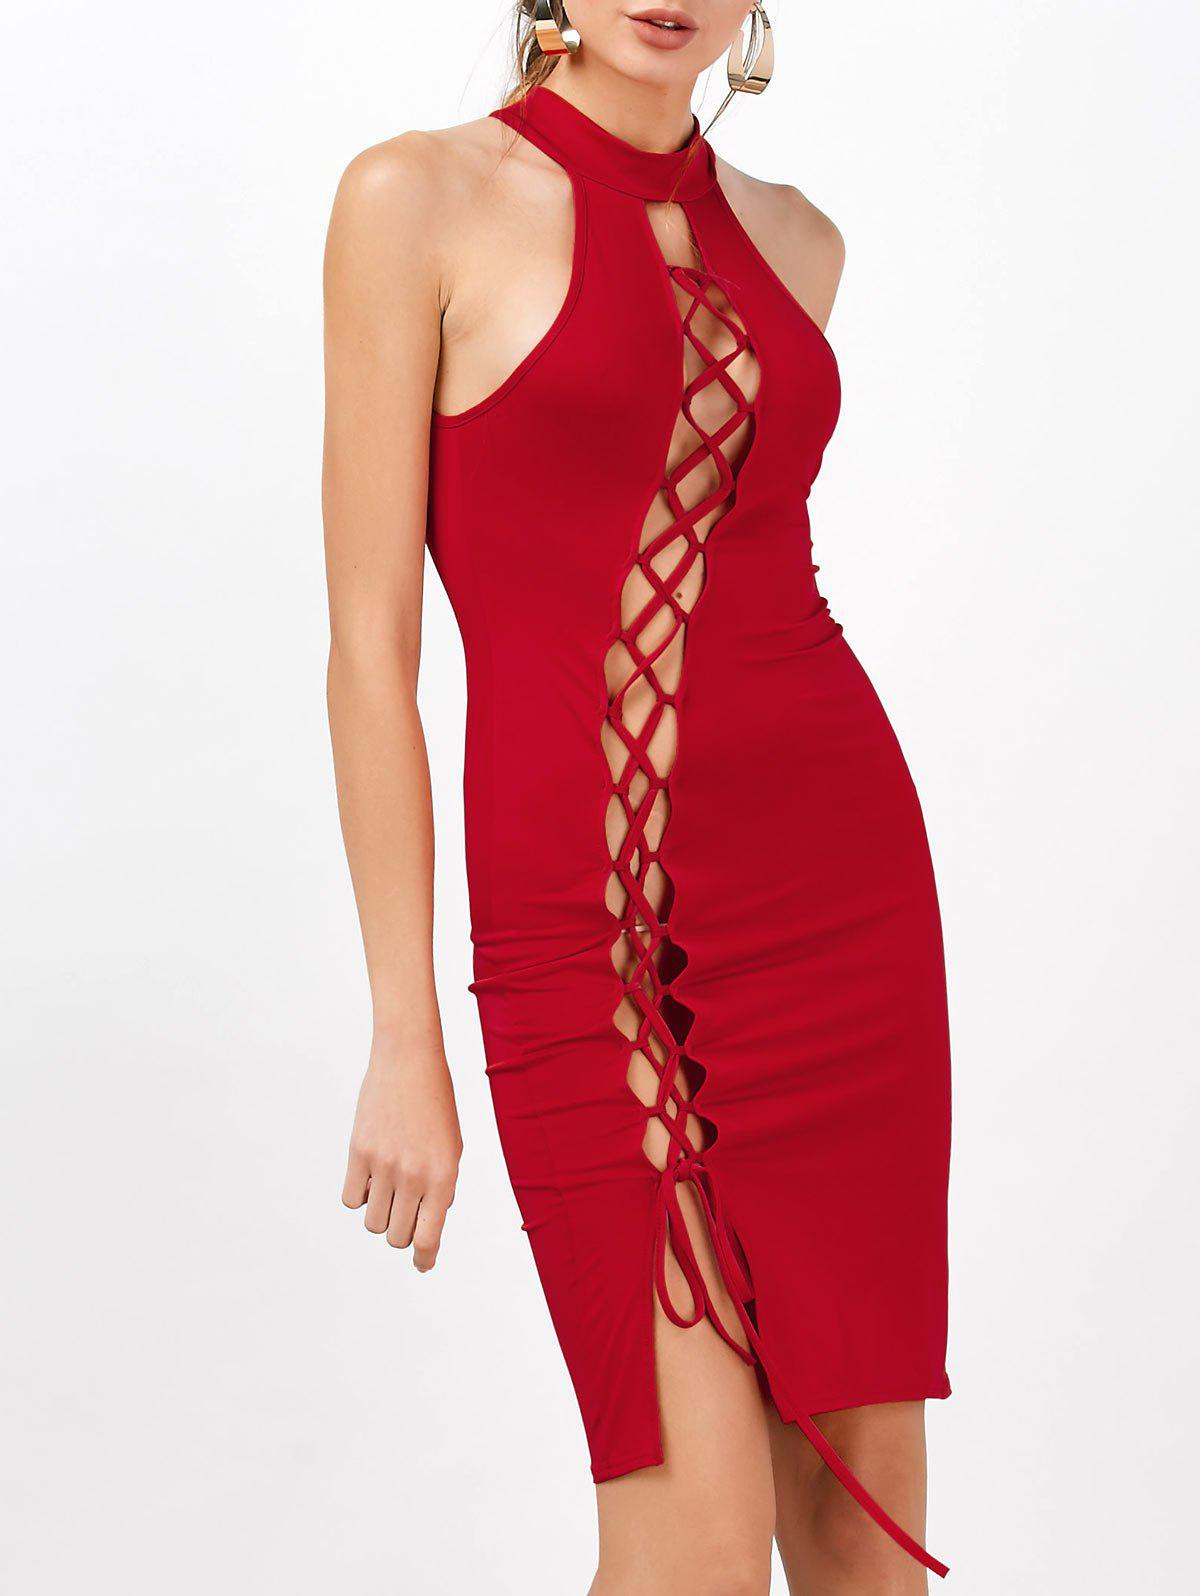 Hot Criss Cross Backless Bodycon Club High Neck Hot Dress